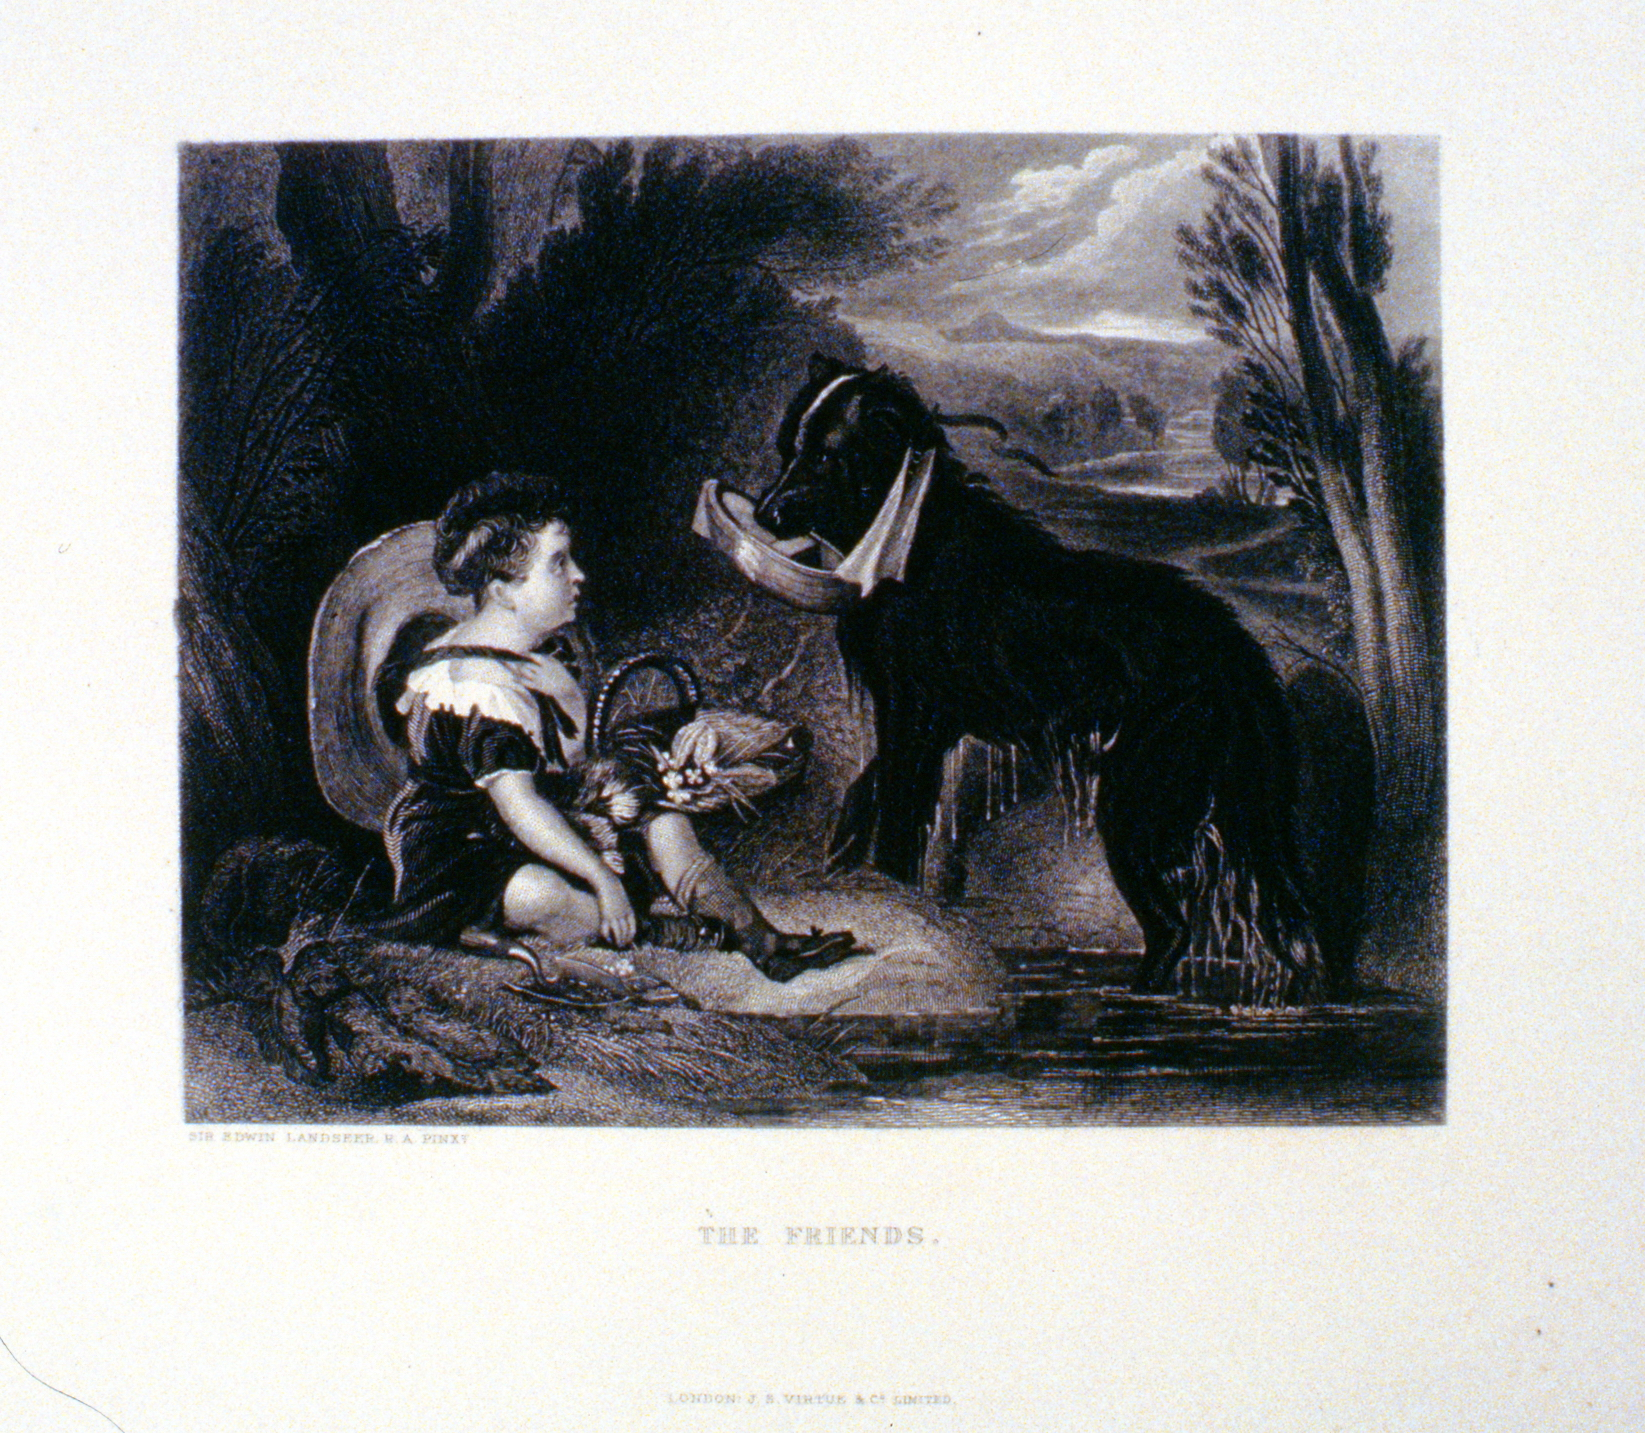 The Friends , c. late 19th Century, artist unknown, steel engraving, 15 cm x 19.2 cm, 1996.08.39, gift of Yvonne Adams